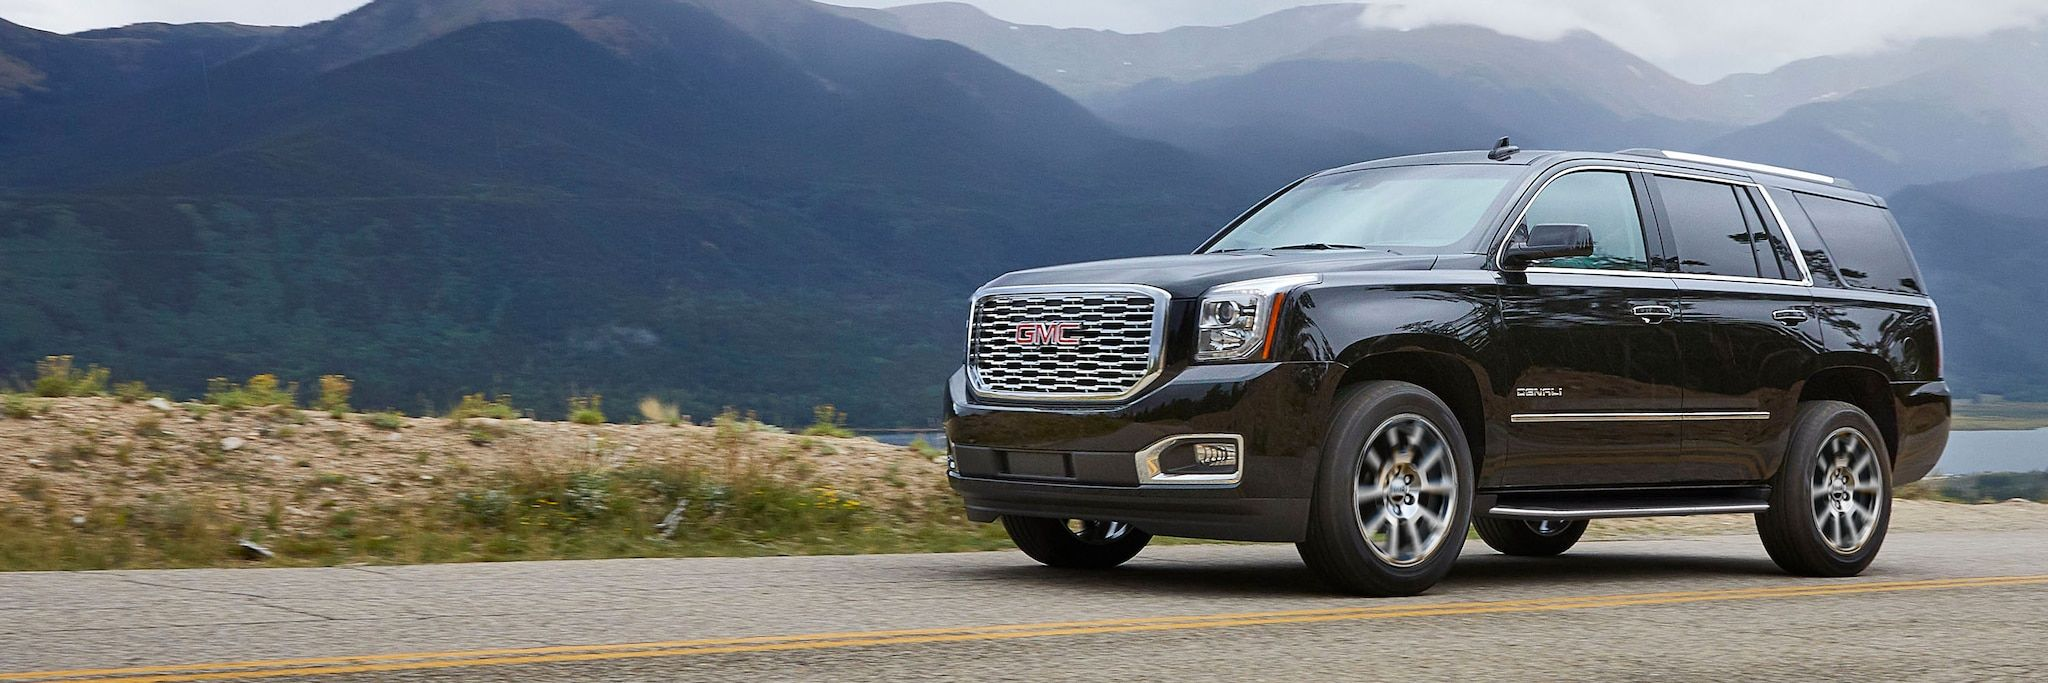 2020 Gmc Yukon Yukon Xl Denali Luxury Full Size Suv In 2020